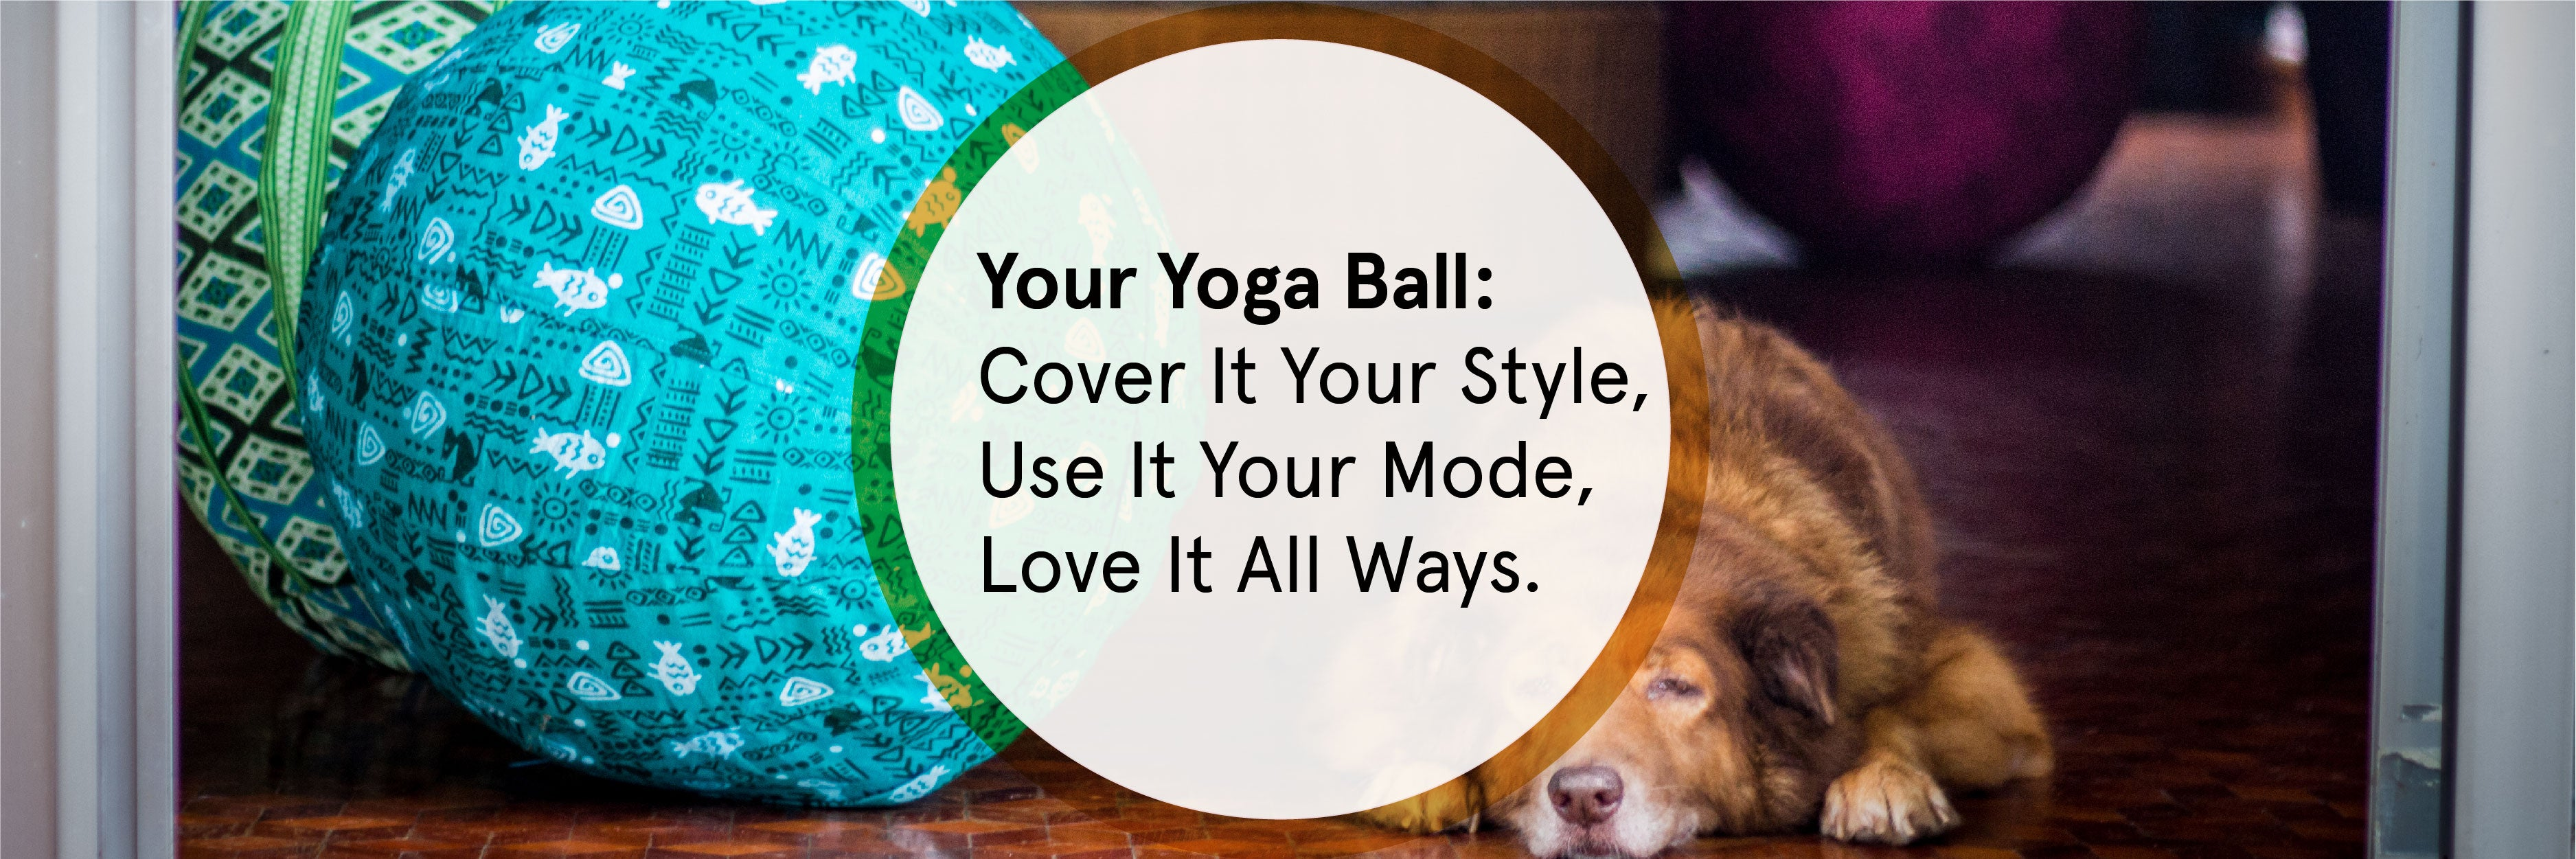 Your Yoga Ball: Cover It Your Style, Use It Your Mode, Love It All Ways